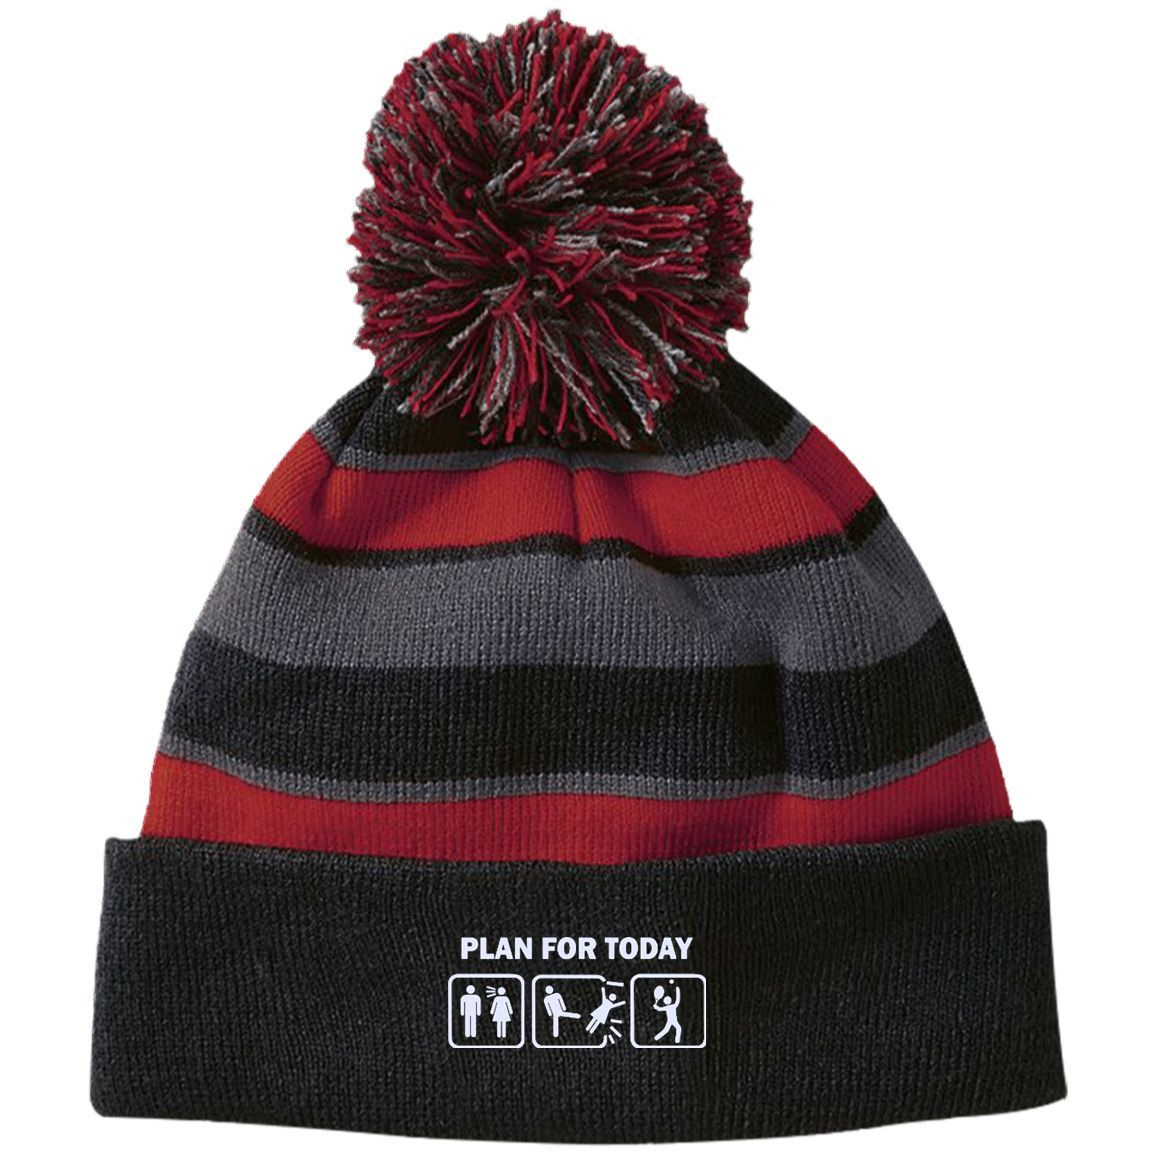 8497e64c900 PLAN FOR TODAY 223835 Holloway Striped Beanie with Pom